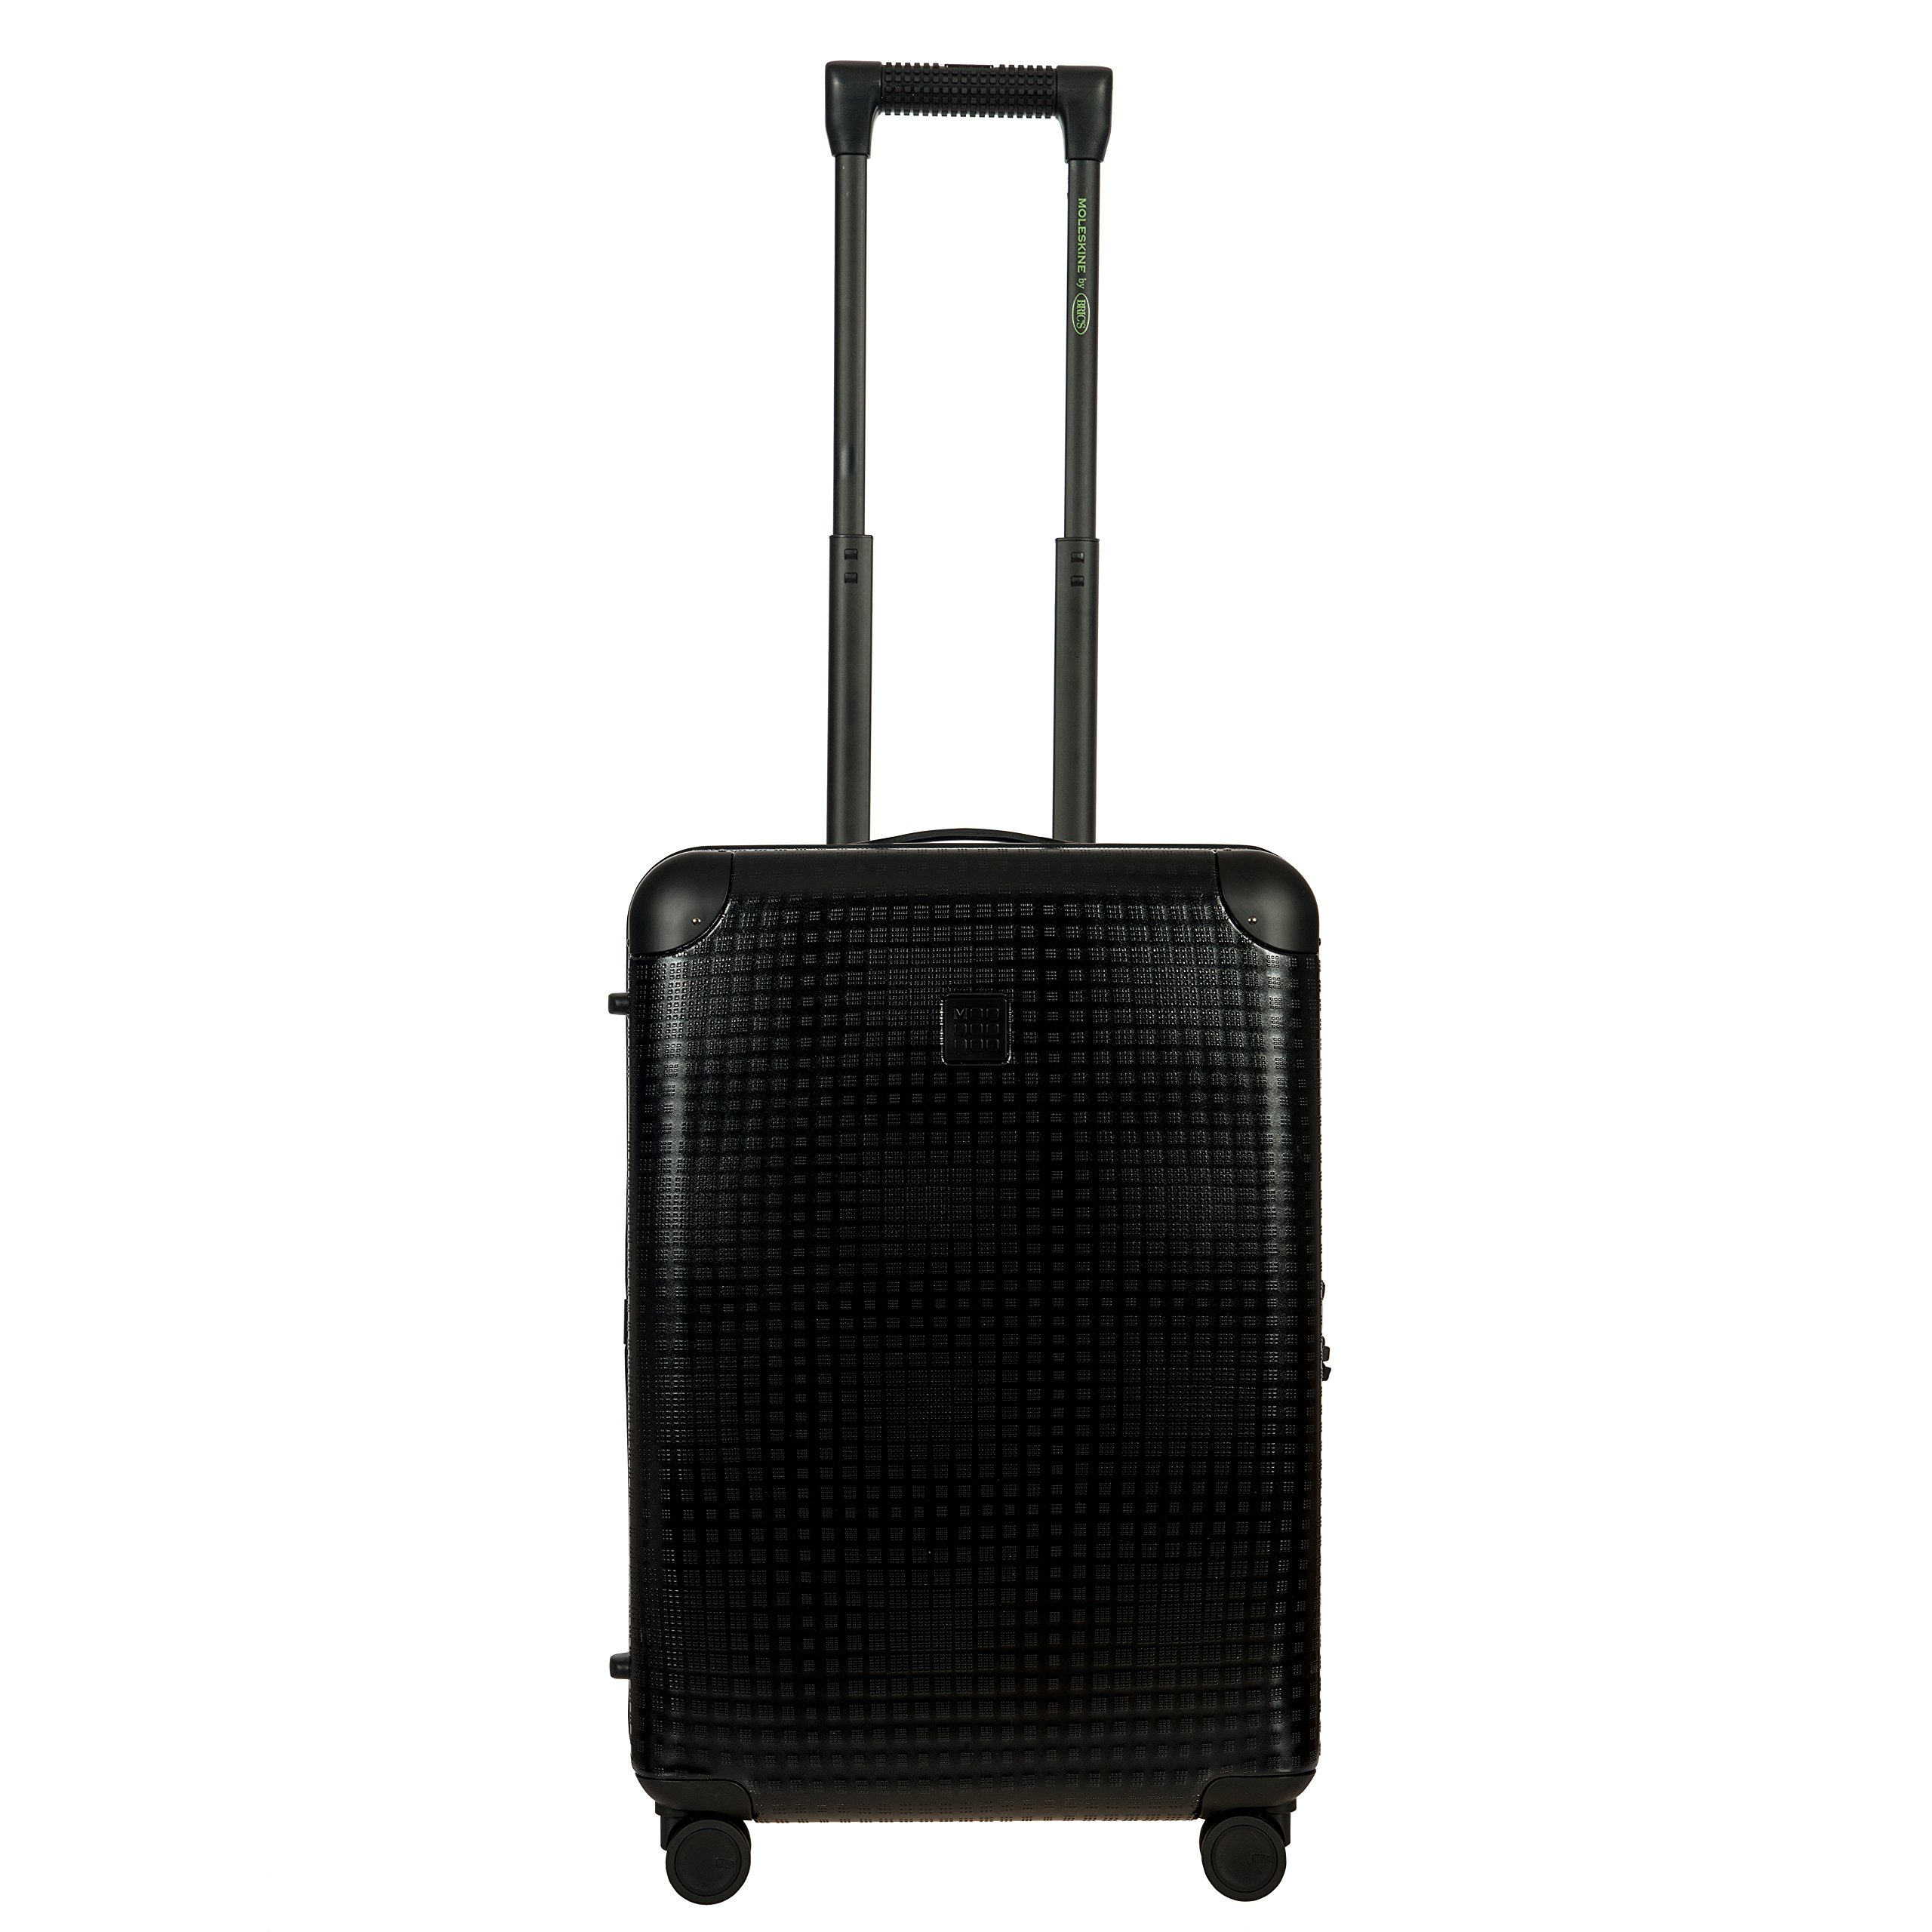 Bric's Men's Moleskine 21 inch International Carry on Polycarbonate Spinner Trunk Hard Case, Black by Bric's